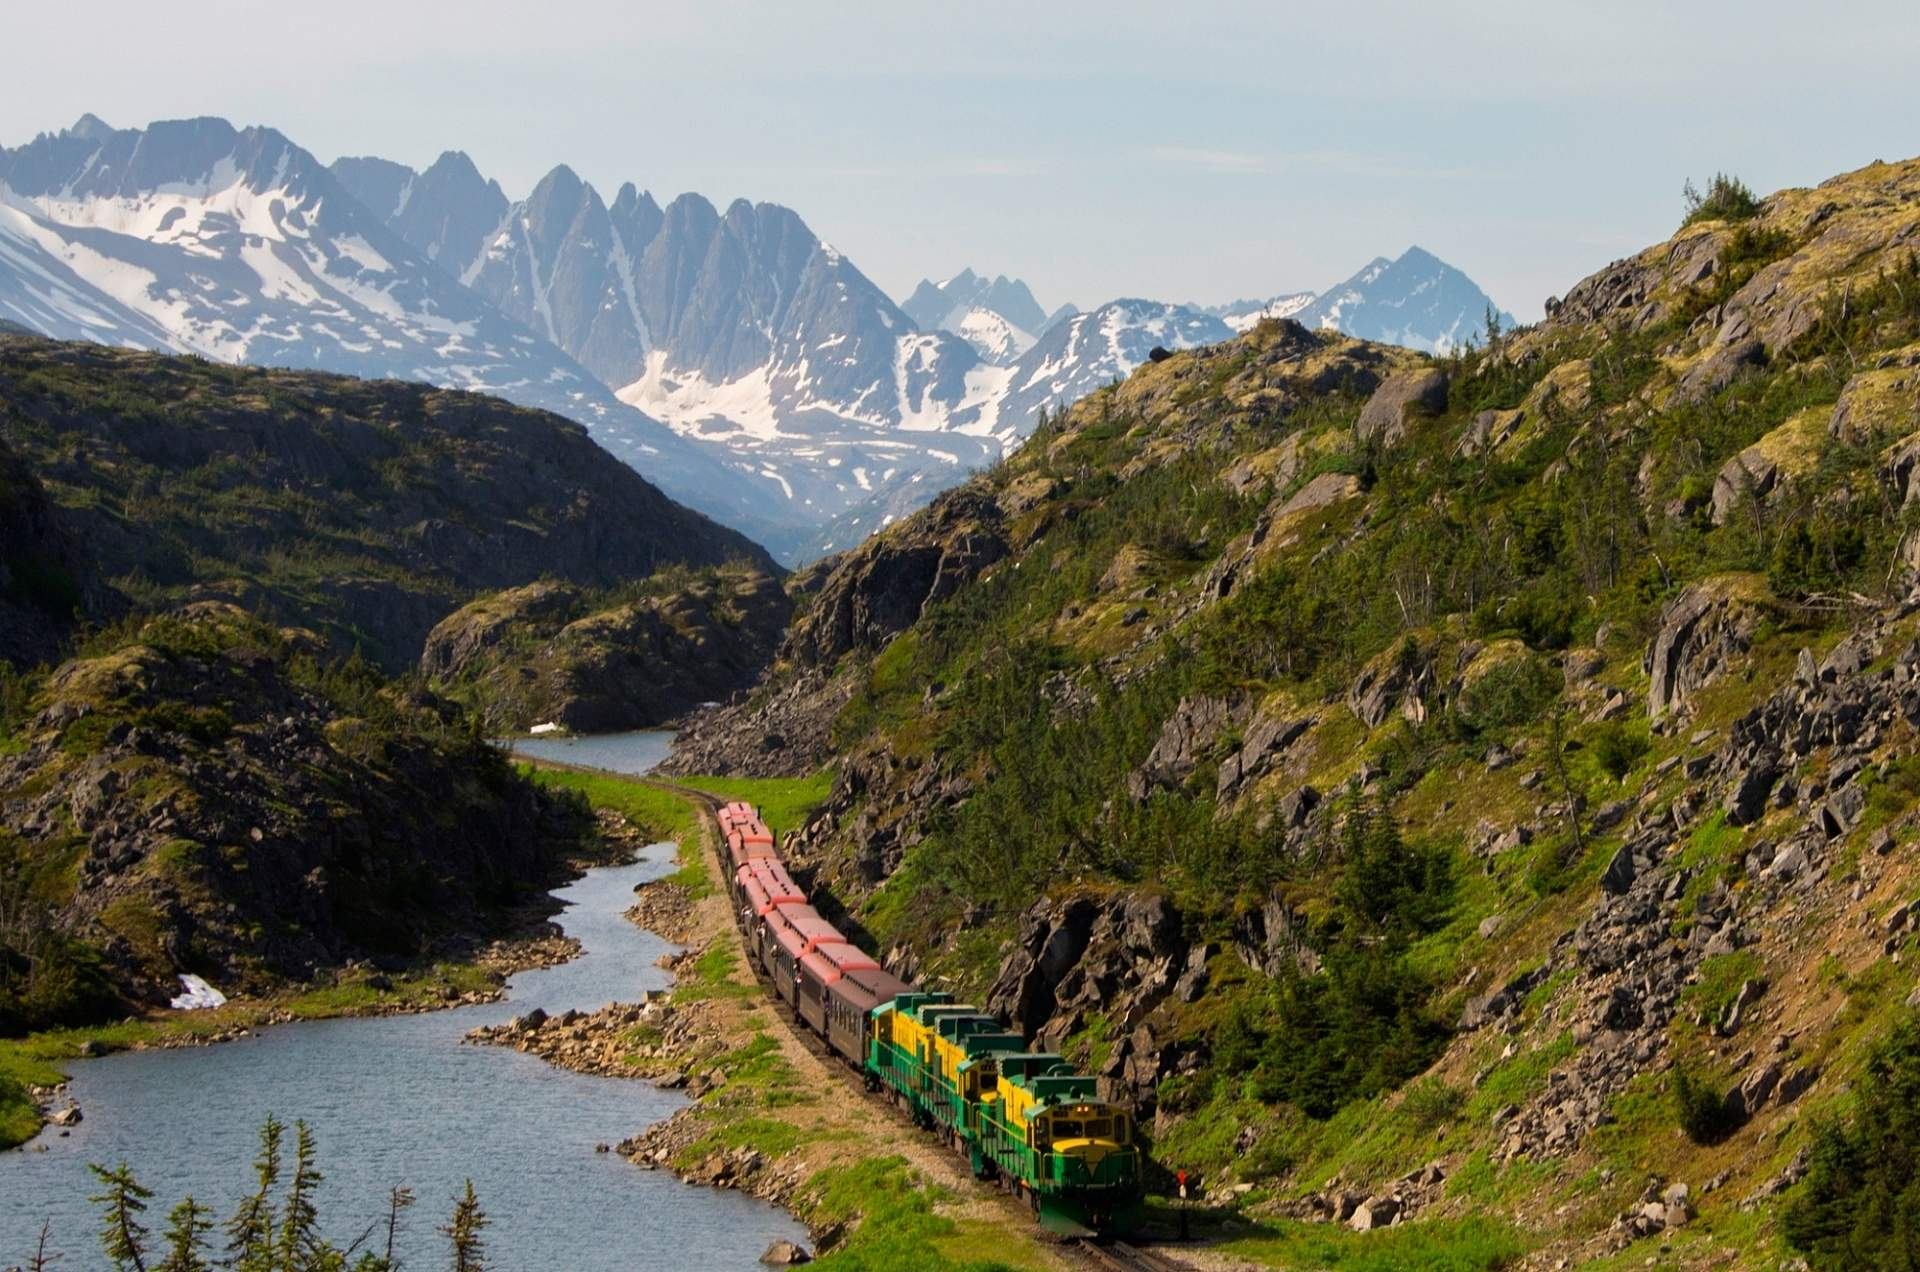 The train moving along the White Pass & Yukon Route surrounded by Alaska mountains and steams